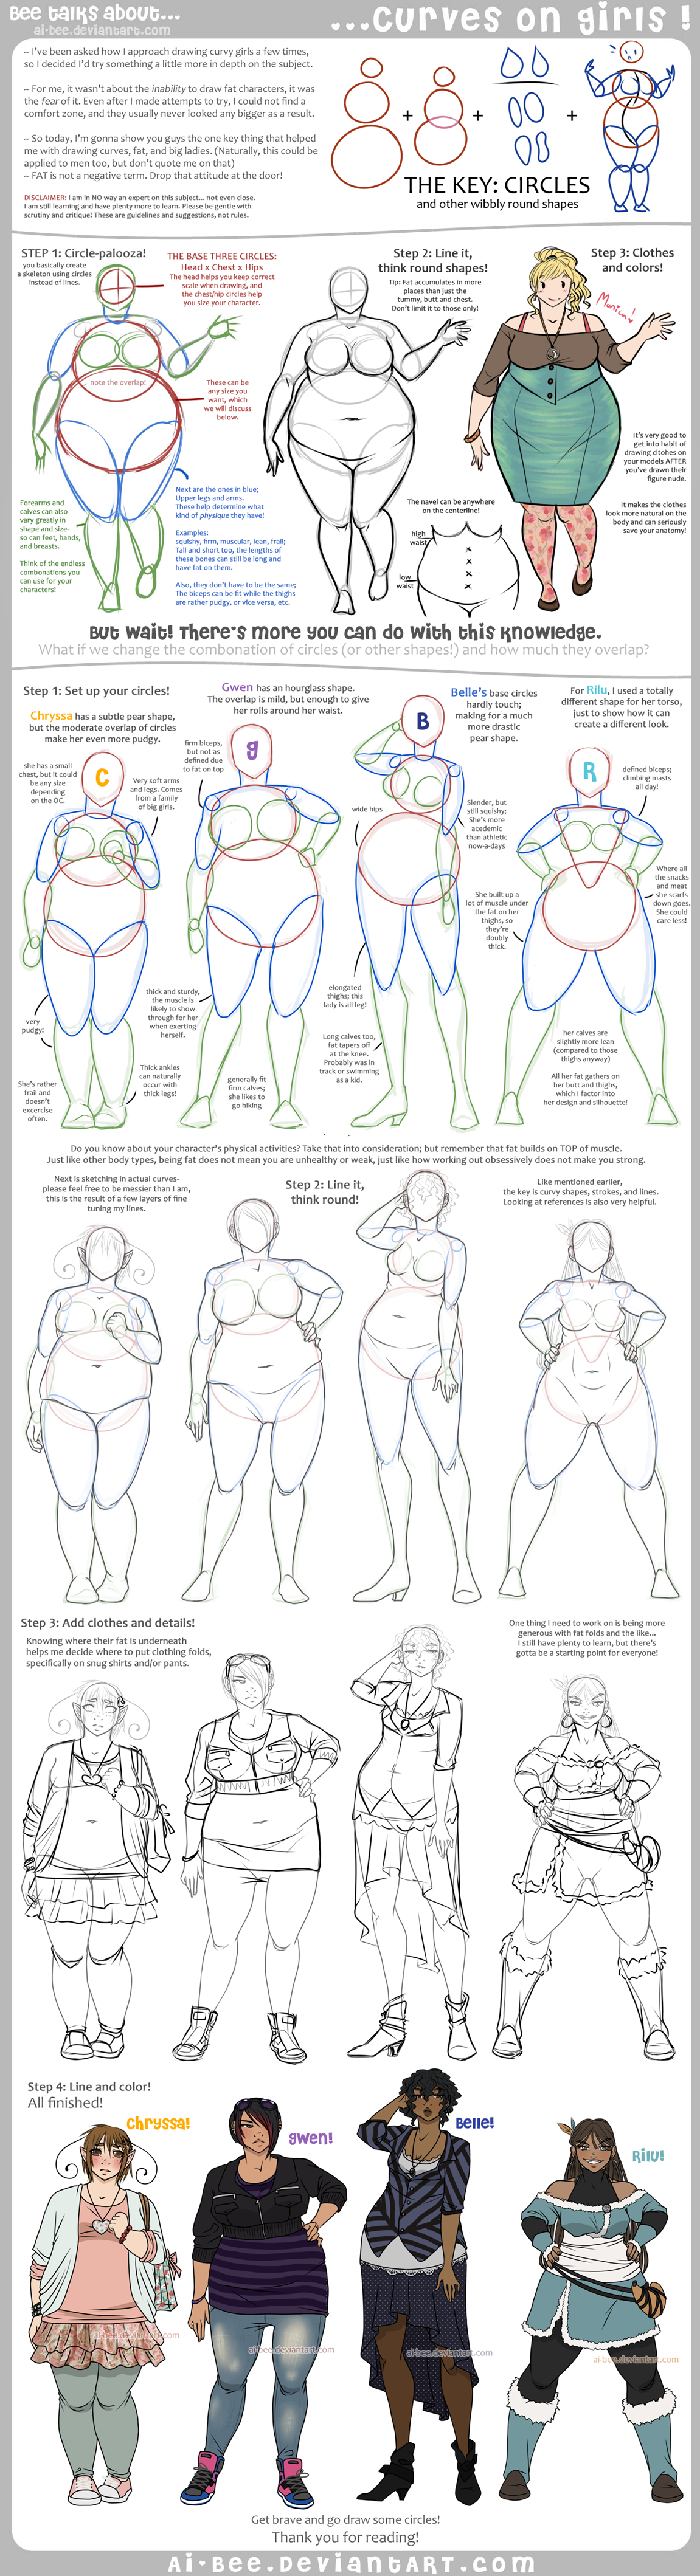 Tutorial to help drawing the curves on Tynnder. The second girl from the left looks about right.